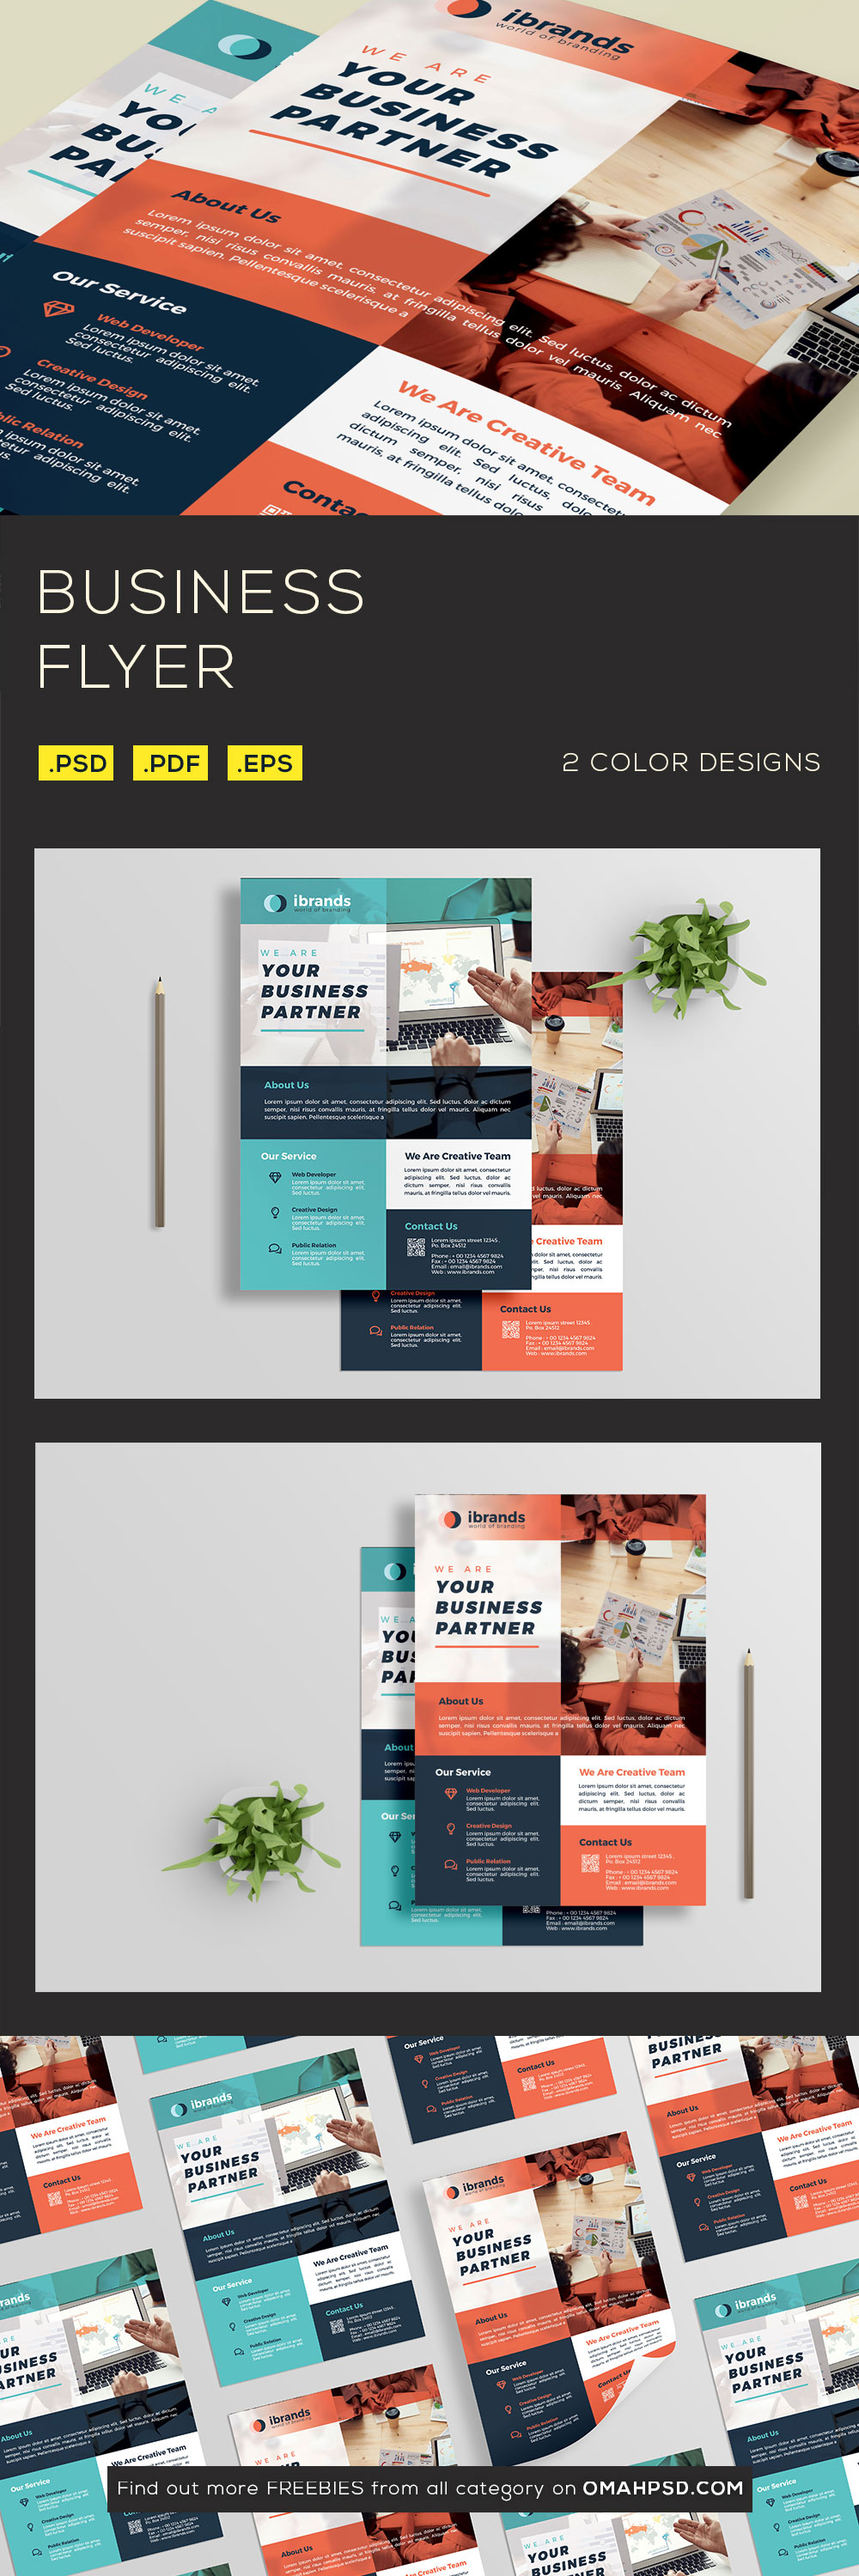 Free Business Flyer Template - Preview